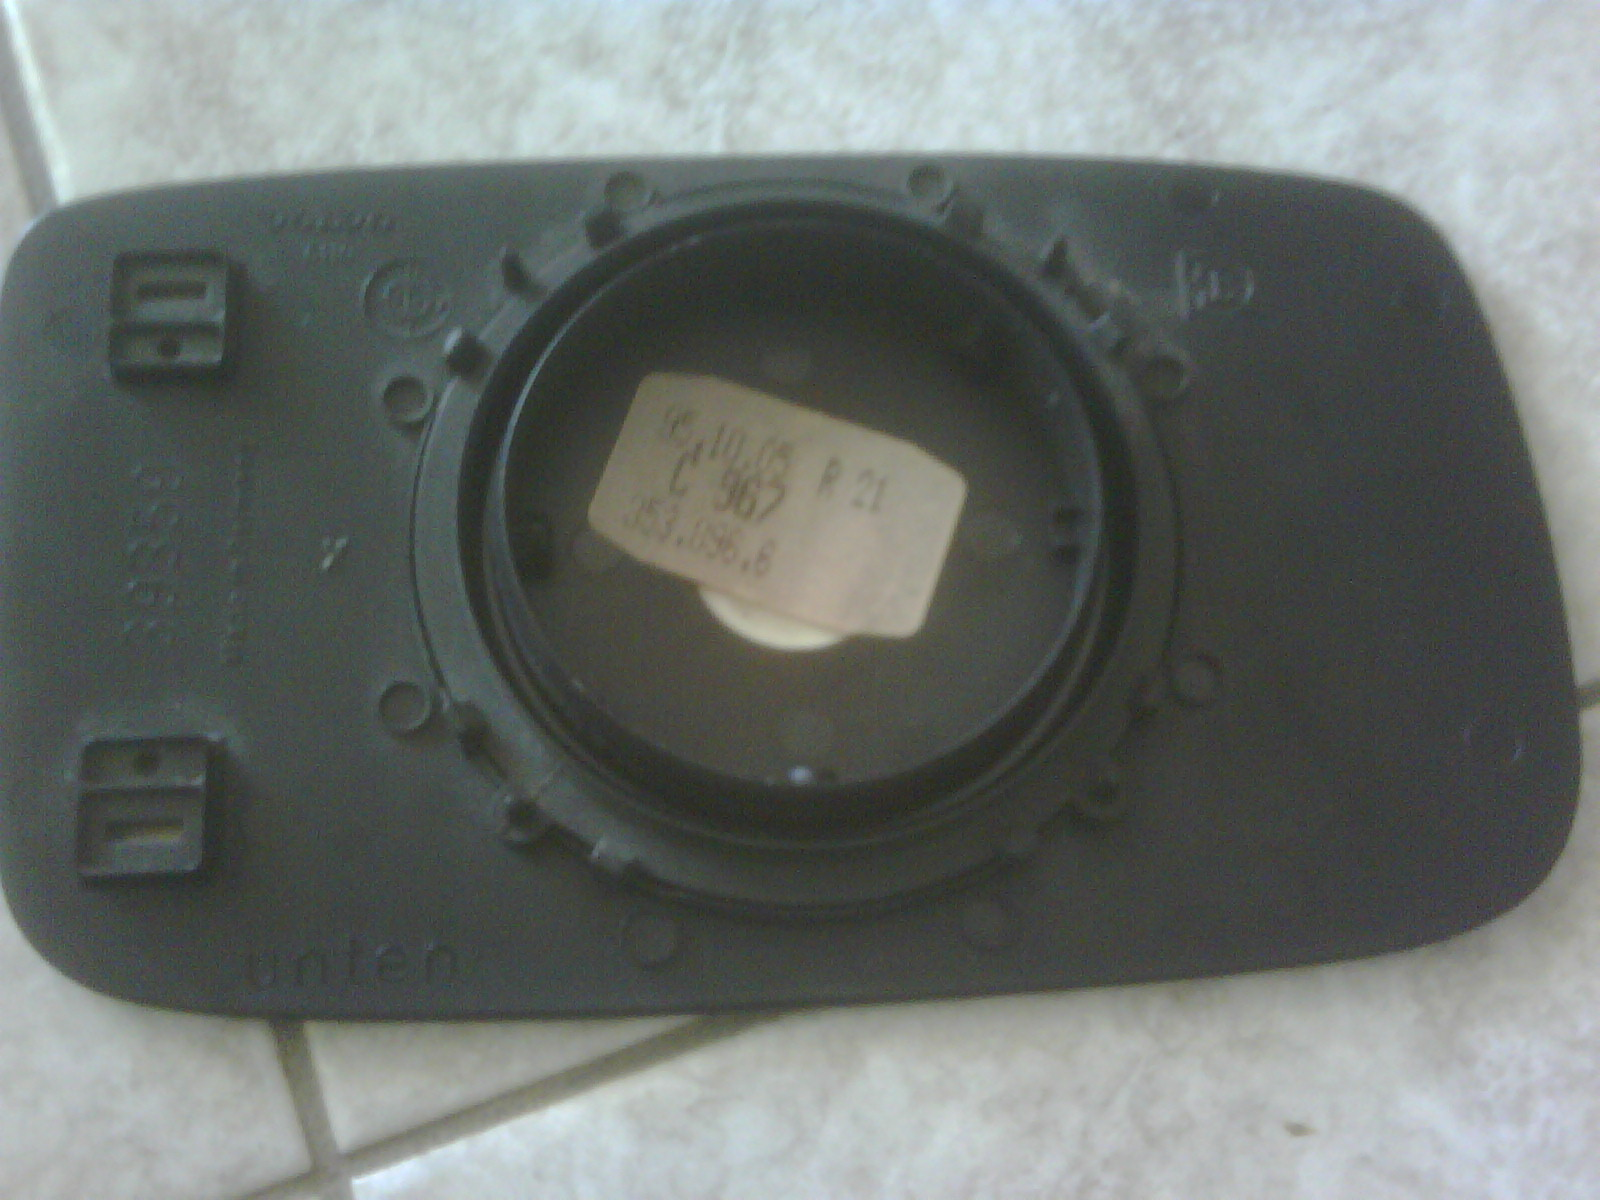 Volvo 240 Live 2011 Wiring Harness Guide Kjetorg Item12 740 940 Lhs Side Mirror Plate Without Glass Myr05